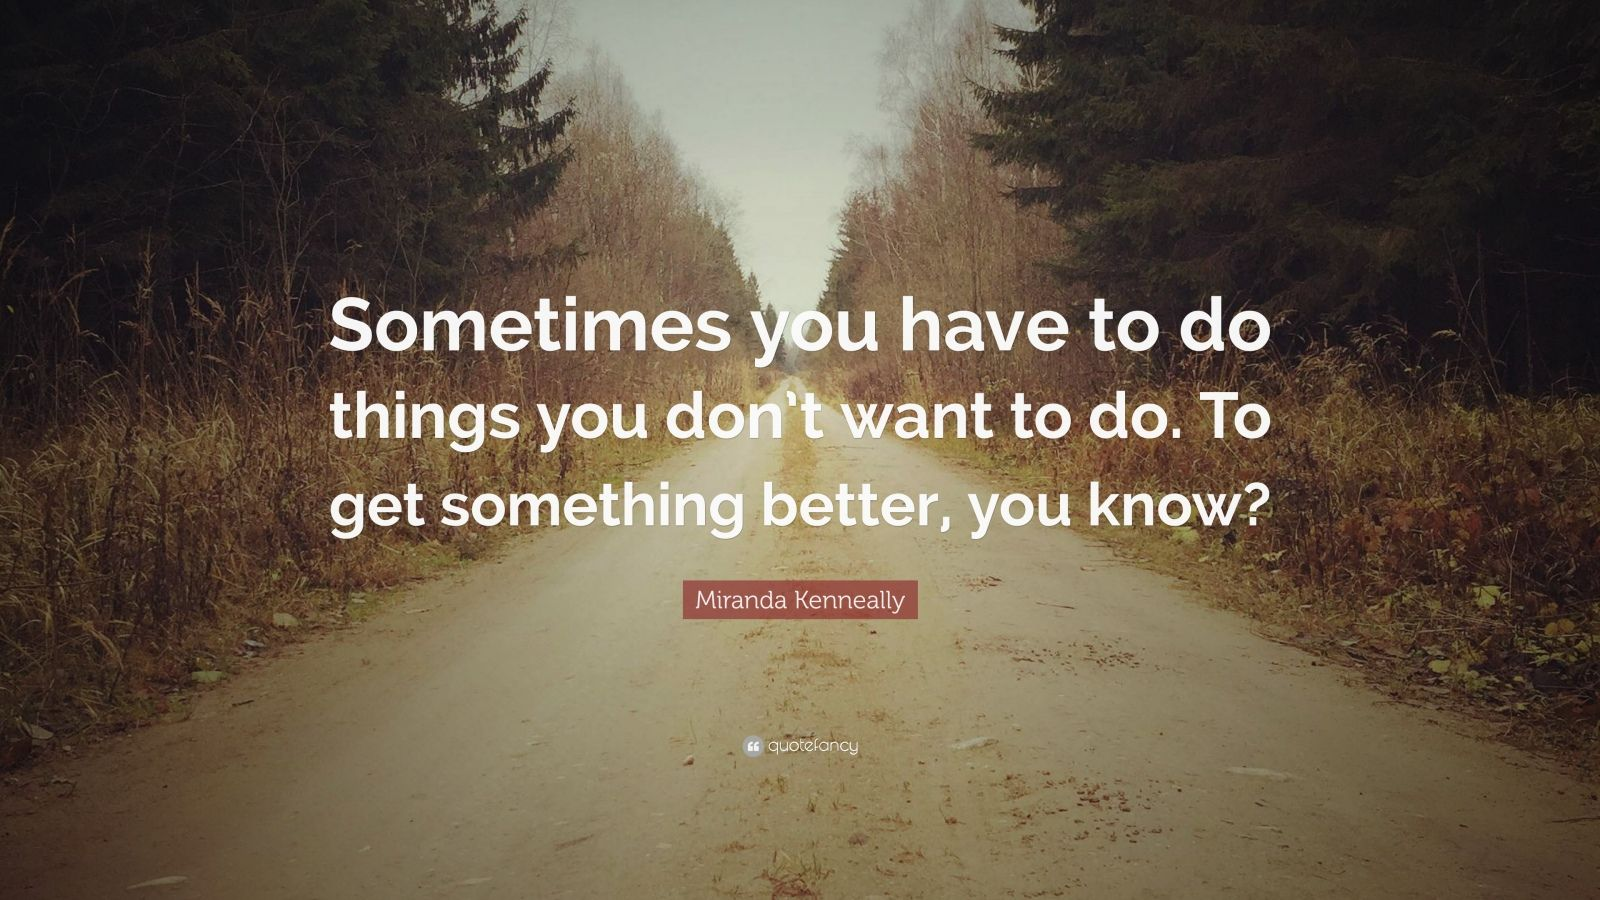 """Miranda Kenneally Quote: """"Sometimes you have to do things you don't want to do. To get something better. you know?"""" (12 wallpapers) - Quotefancy"""